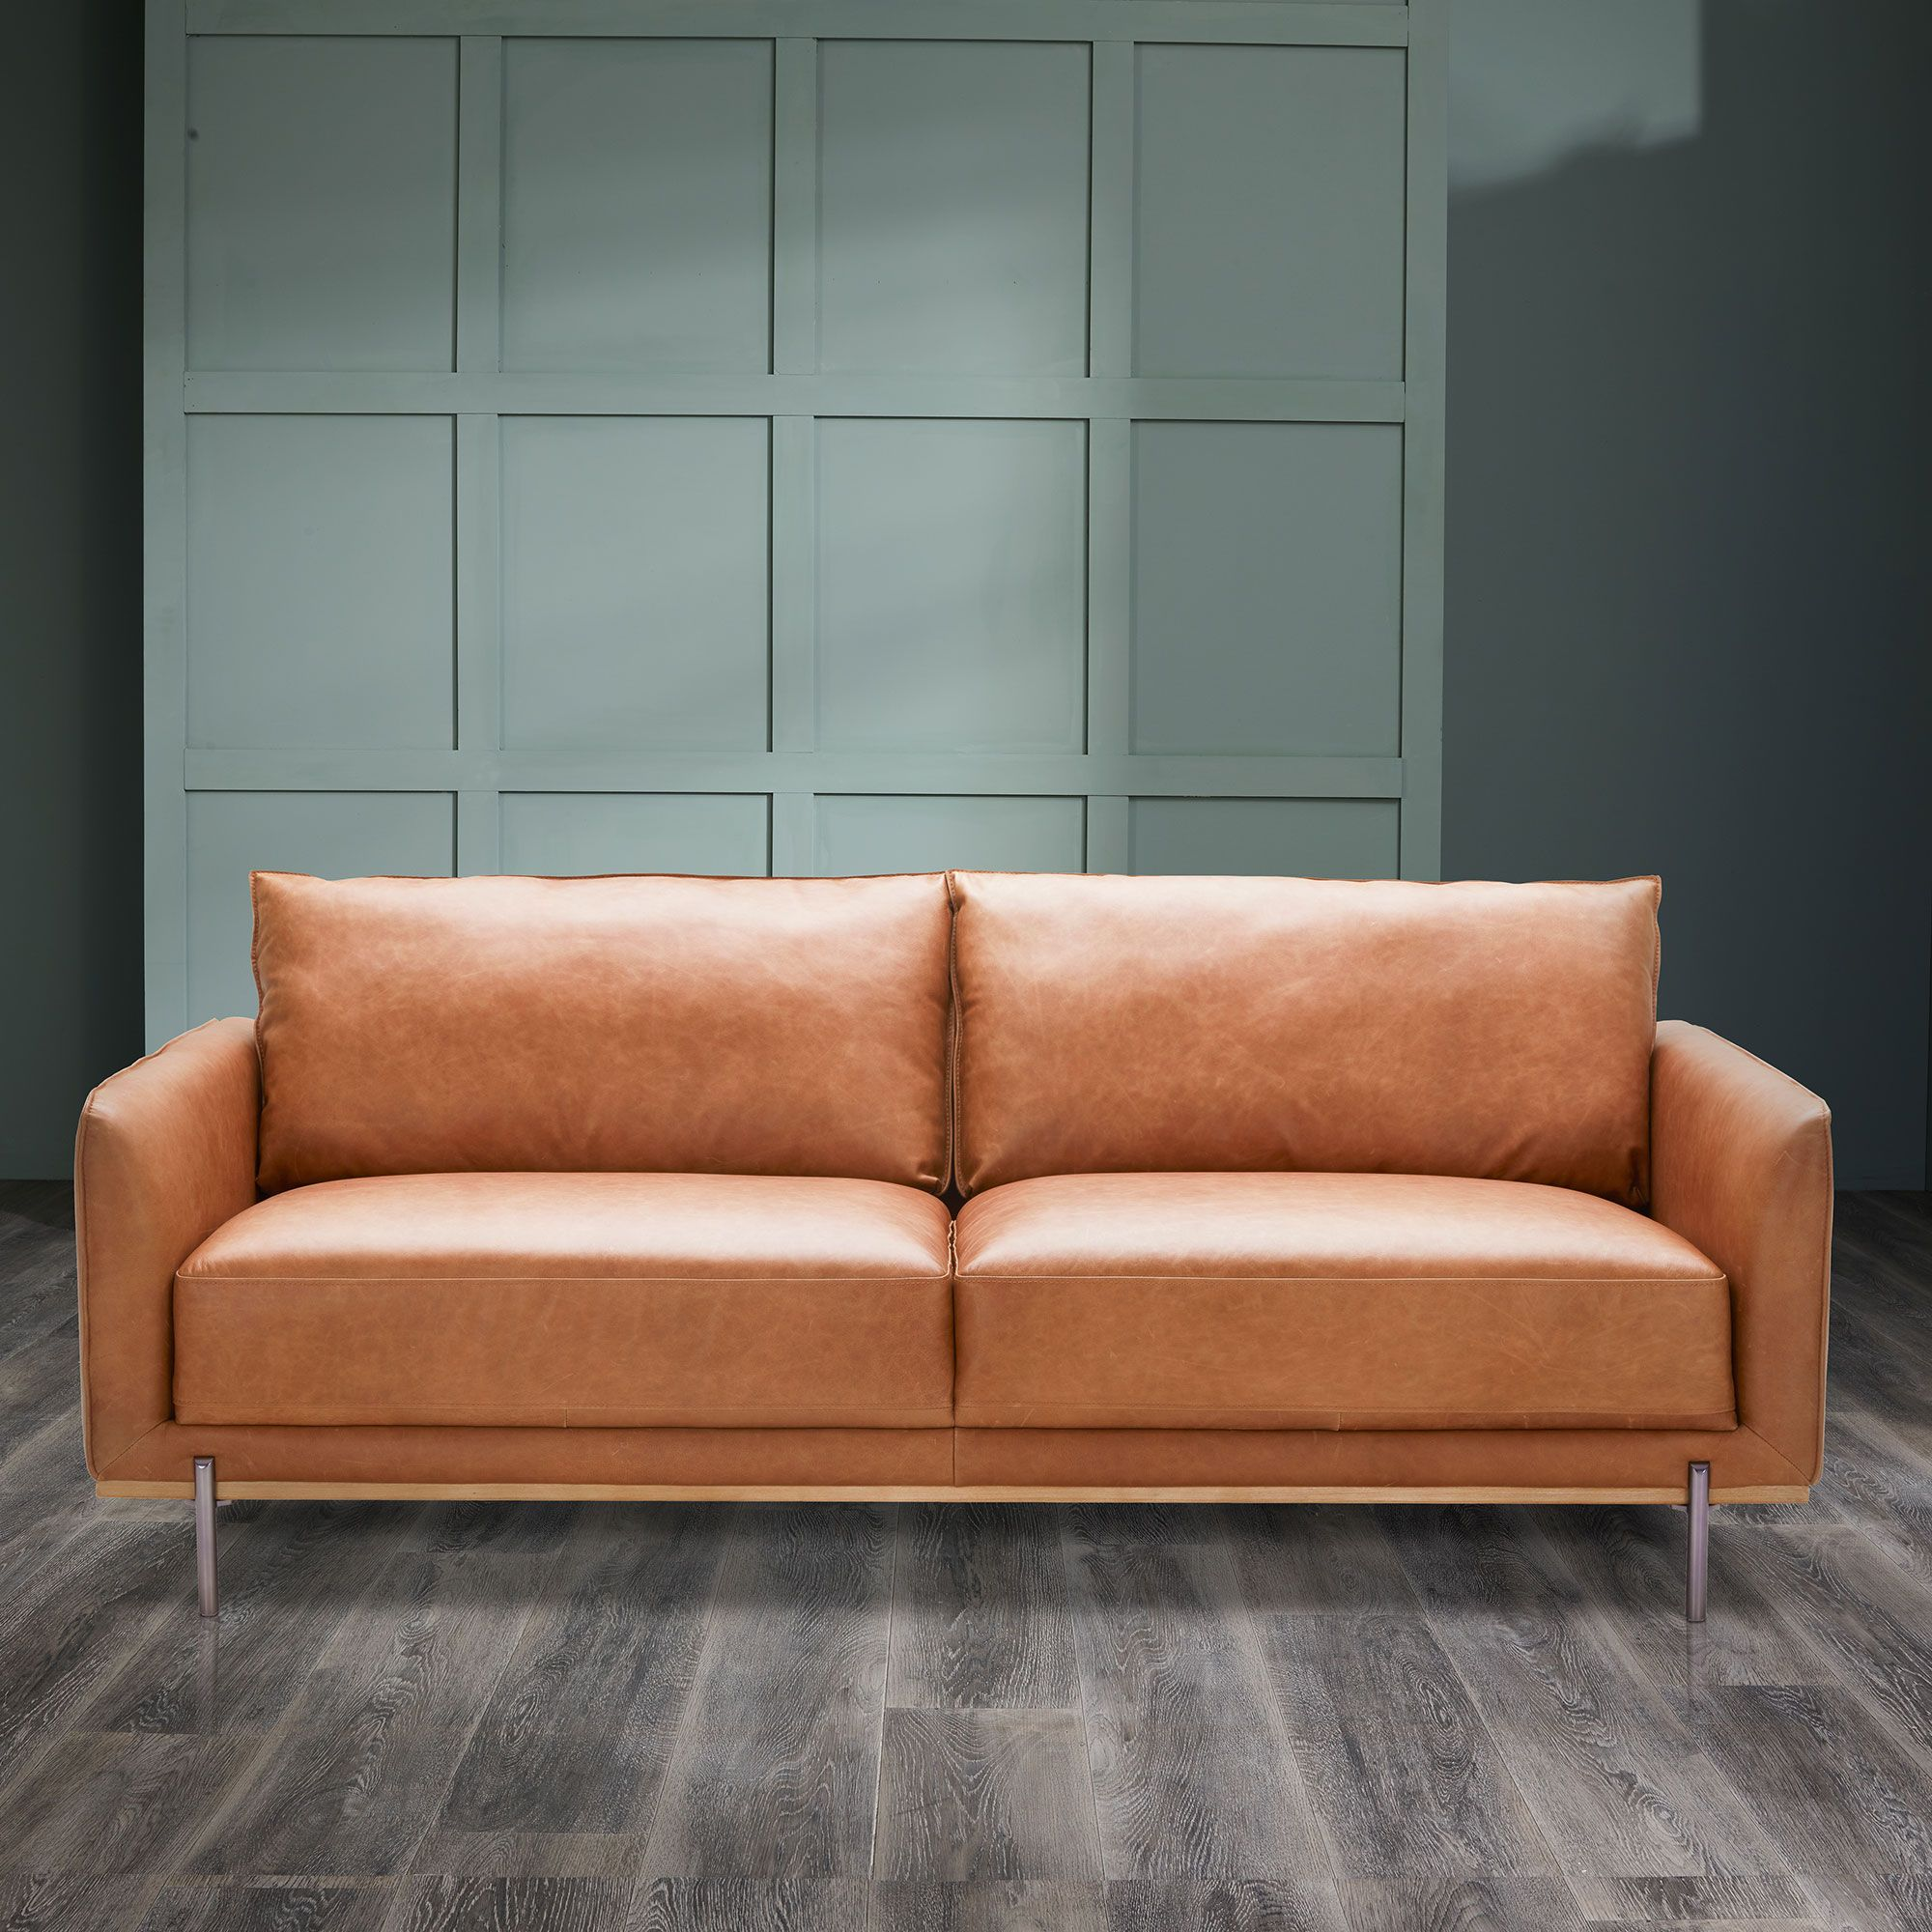 Pleasant Our Modish Tan Leather Loveseat Has A Mid Century Modern Bralicious Painted Fabric Chair Ideas Braliciousco